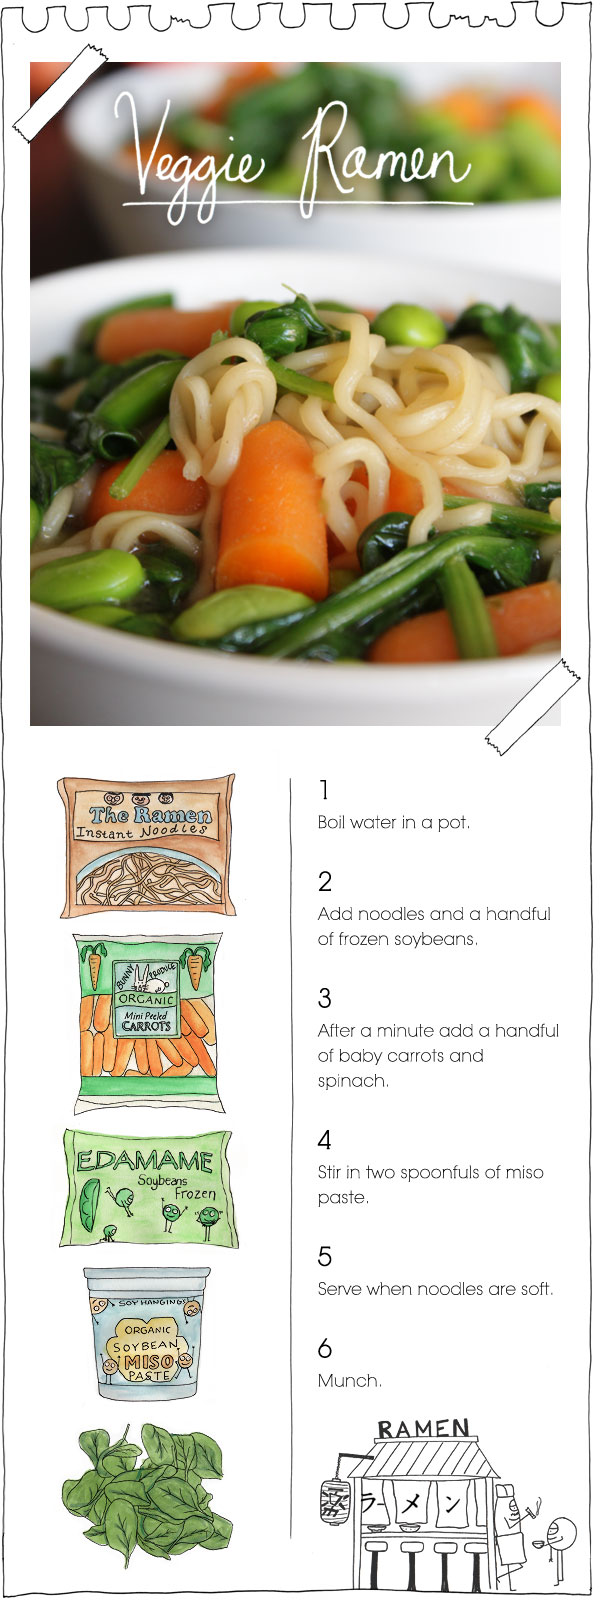 The Vegan Stoner's Veggie Ramen